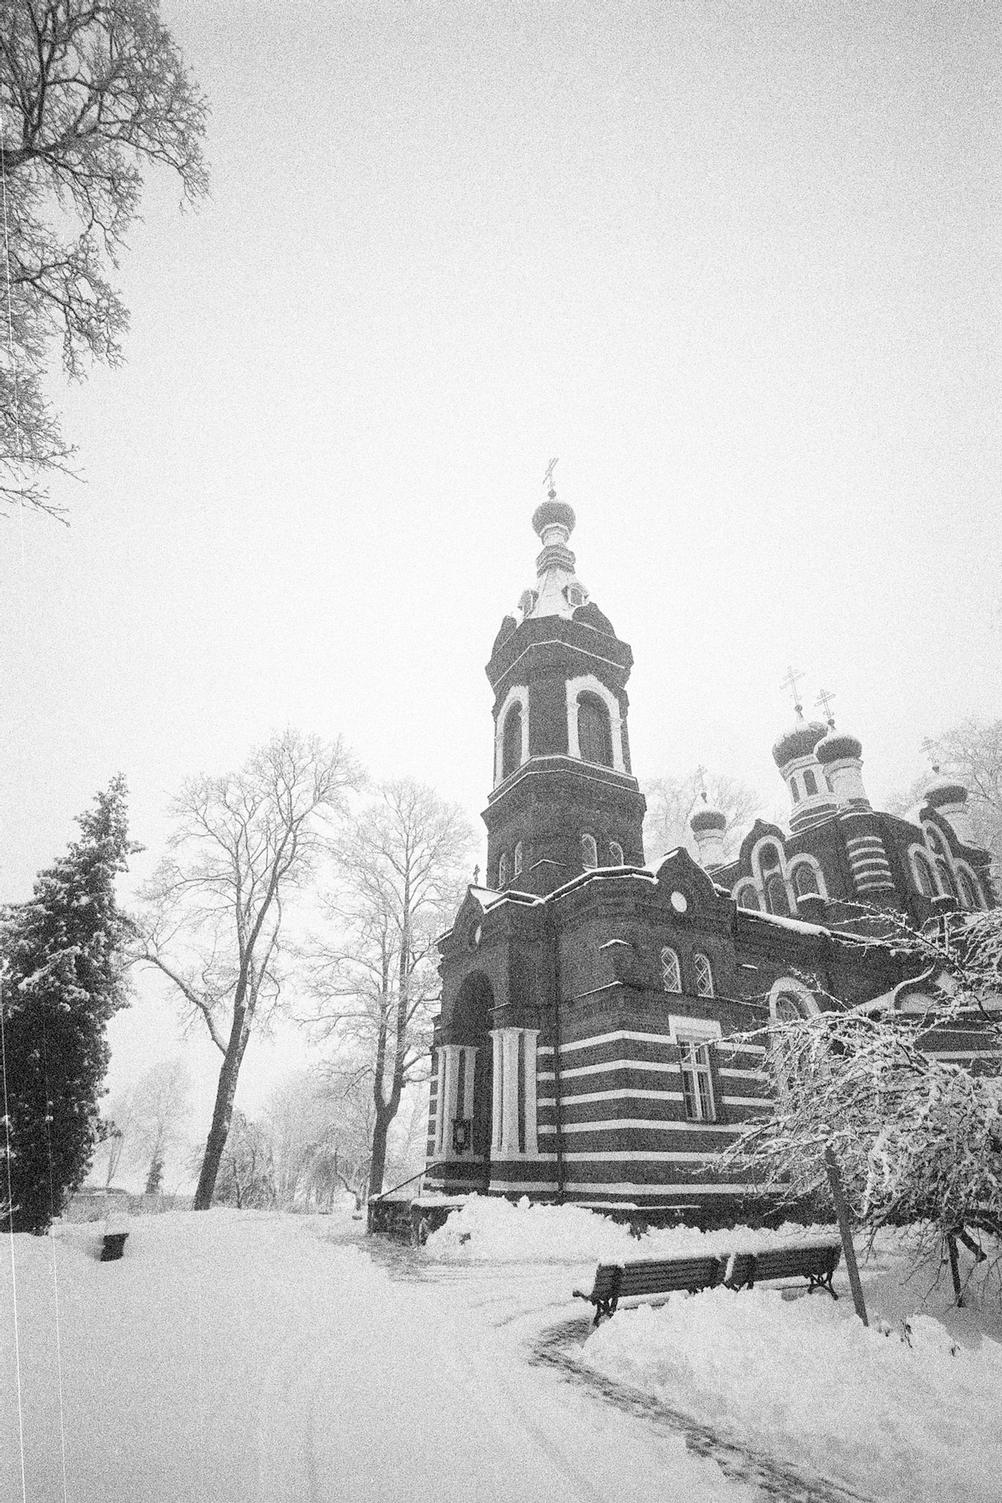 Photo of a church in wintery mist.